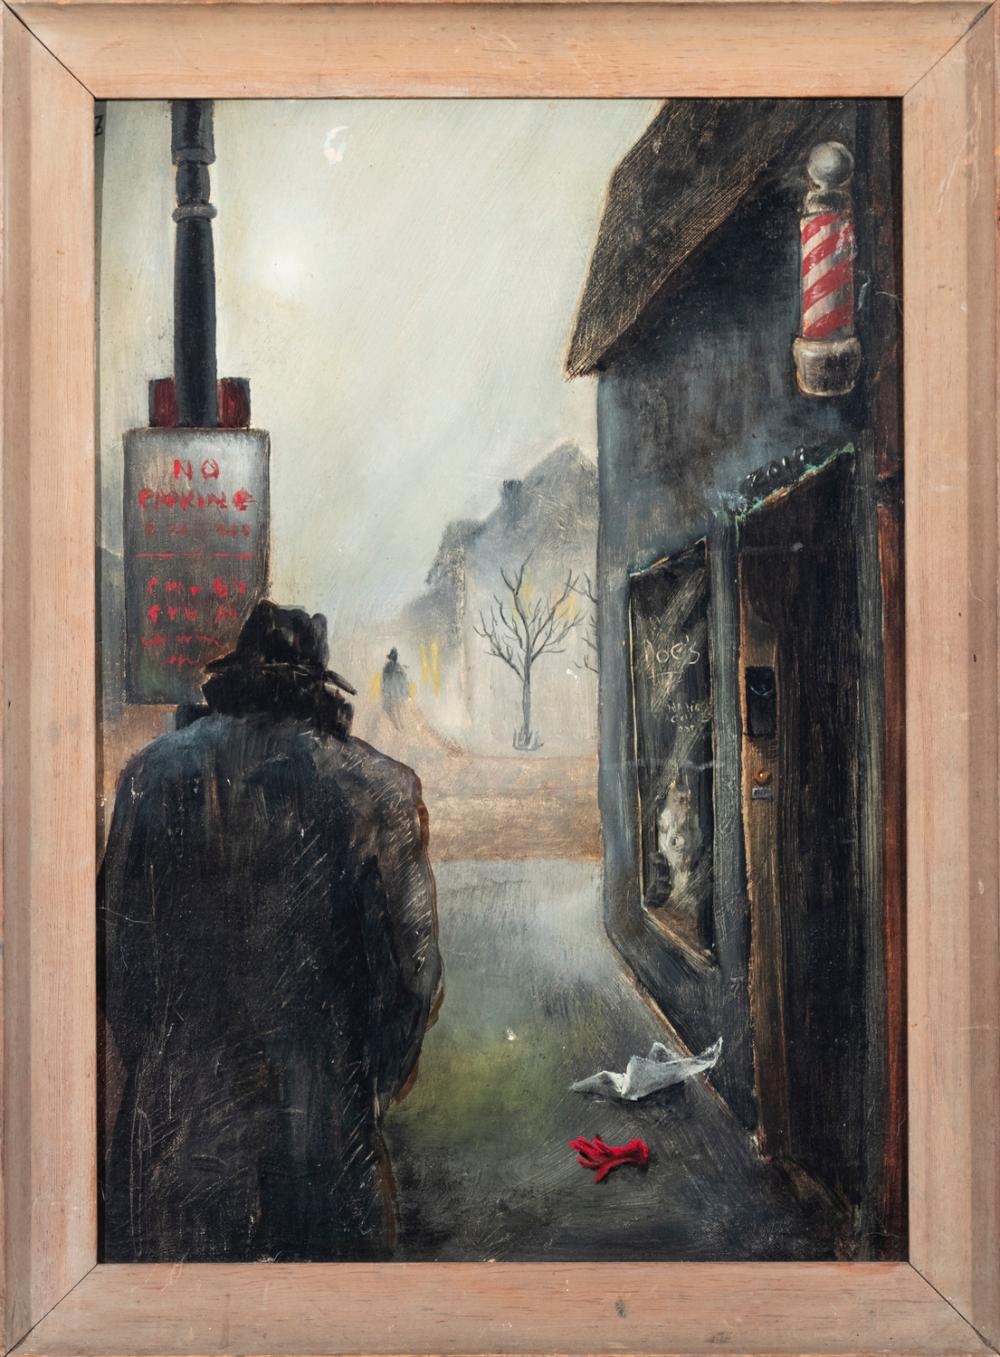 Keith Pitzler, Virginia, 20th century, The Lost Glove, oil on canvas board, 20 x 14 inches